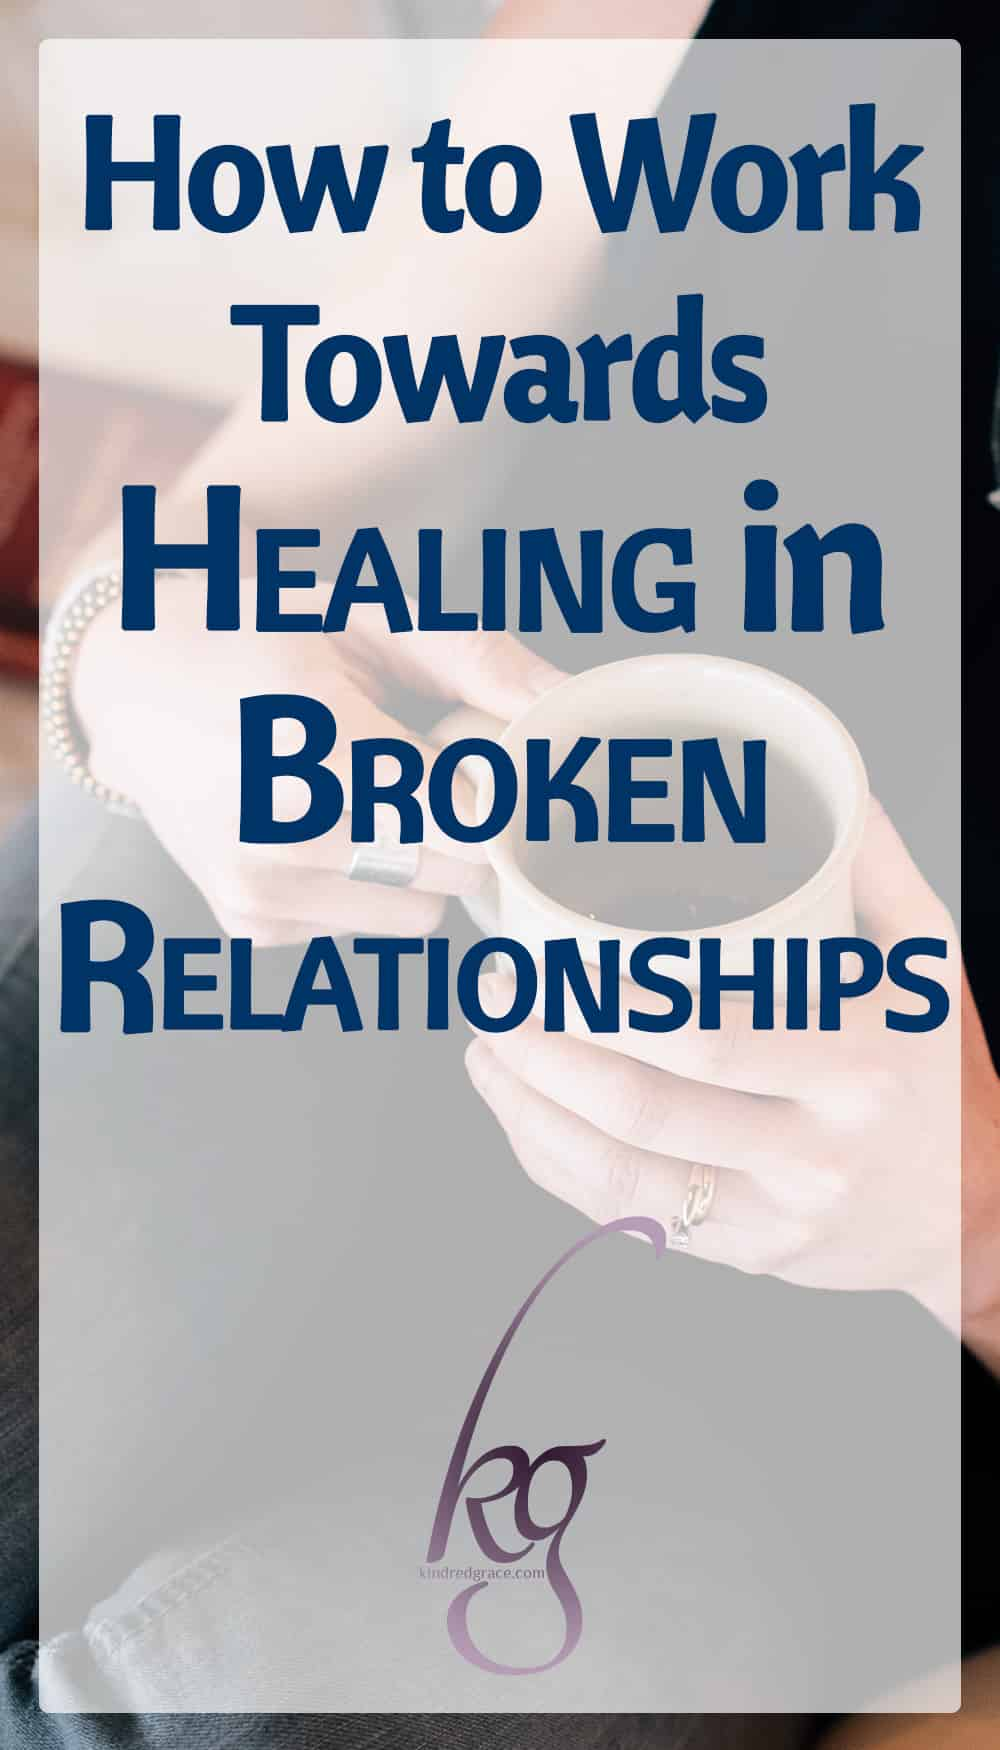 Sometimes the loss of some relationships can never be bridged, either because of death or distance or abuse, but that doesn't mean we can't still experience healing. And in many other cases, there are truly healthy ways to step back into relationship in a way that honors God and others. via @KindredGrace